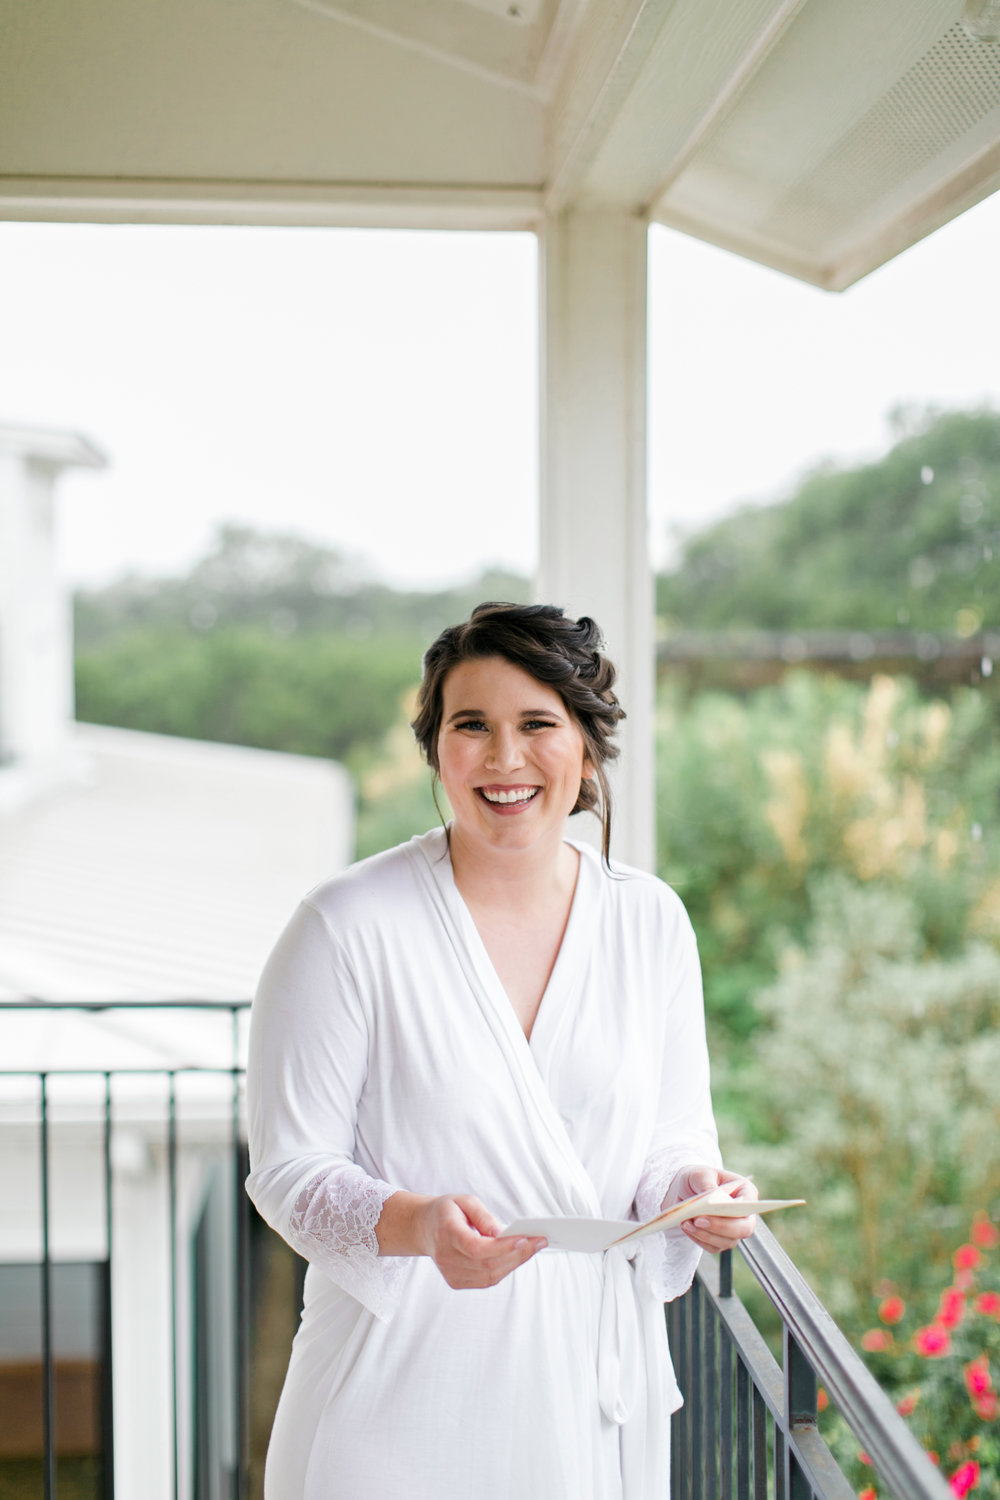 Austin_Texas_Fine_Art_Wedding_Photographer_Kayla_Snell_Photography_Antebellum_Oaks54.jpg